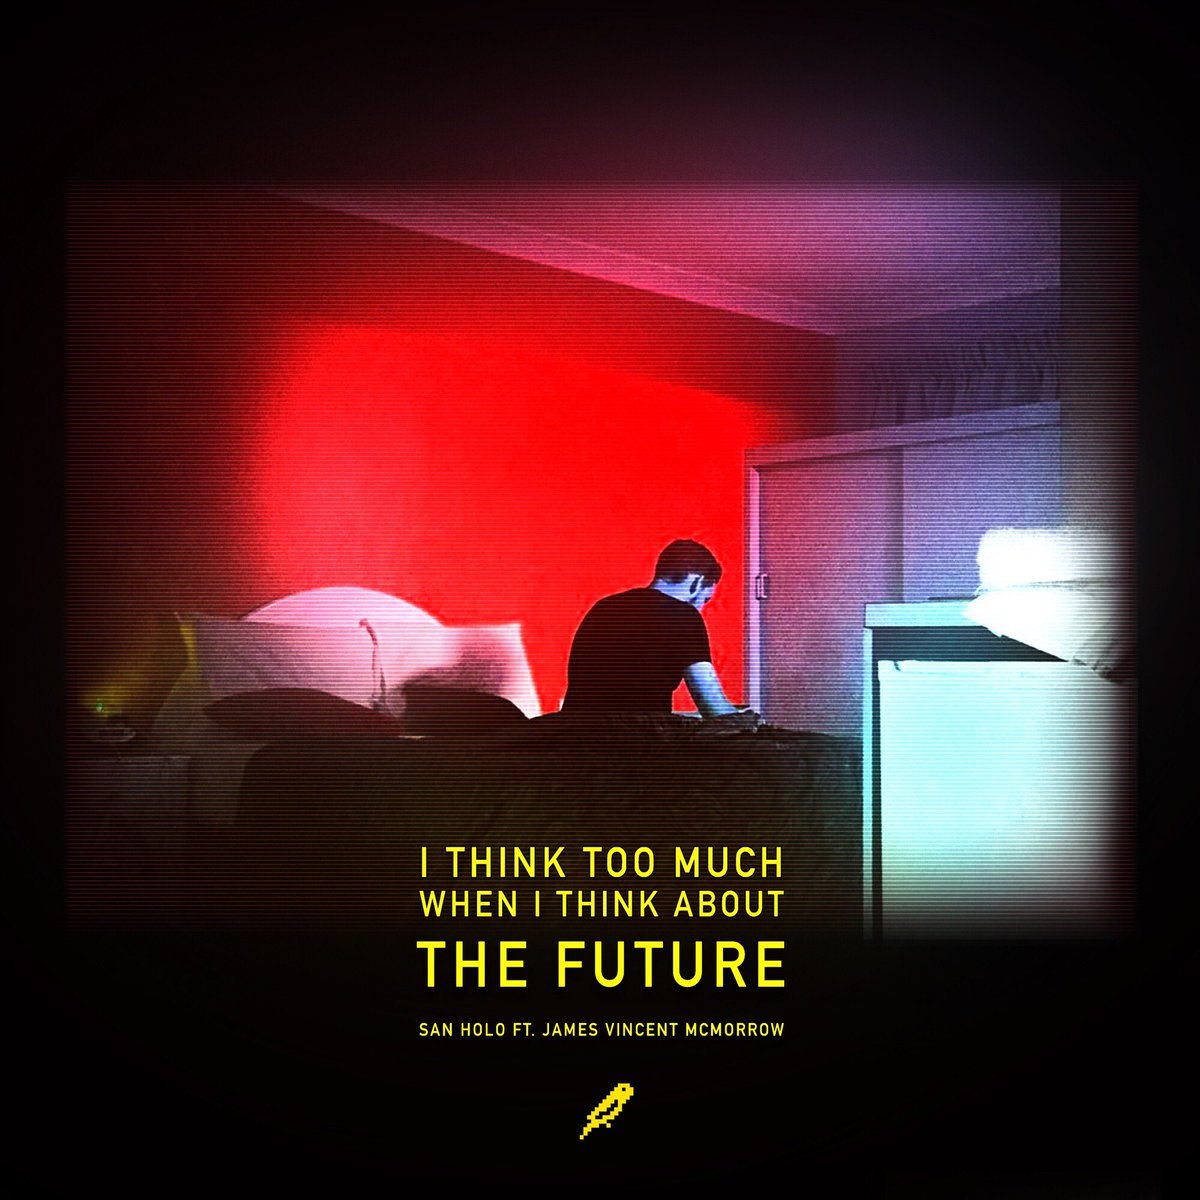 The Future - San Holo